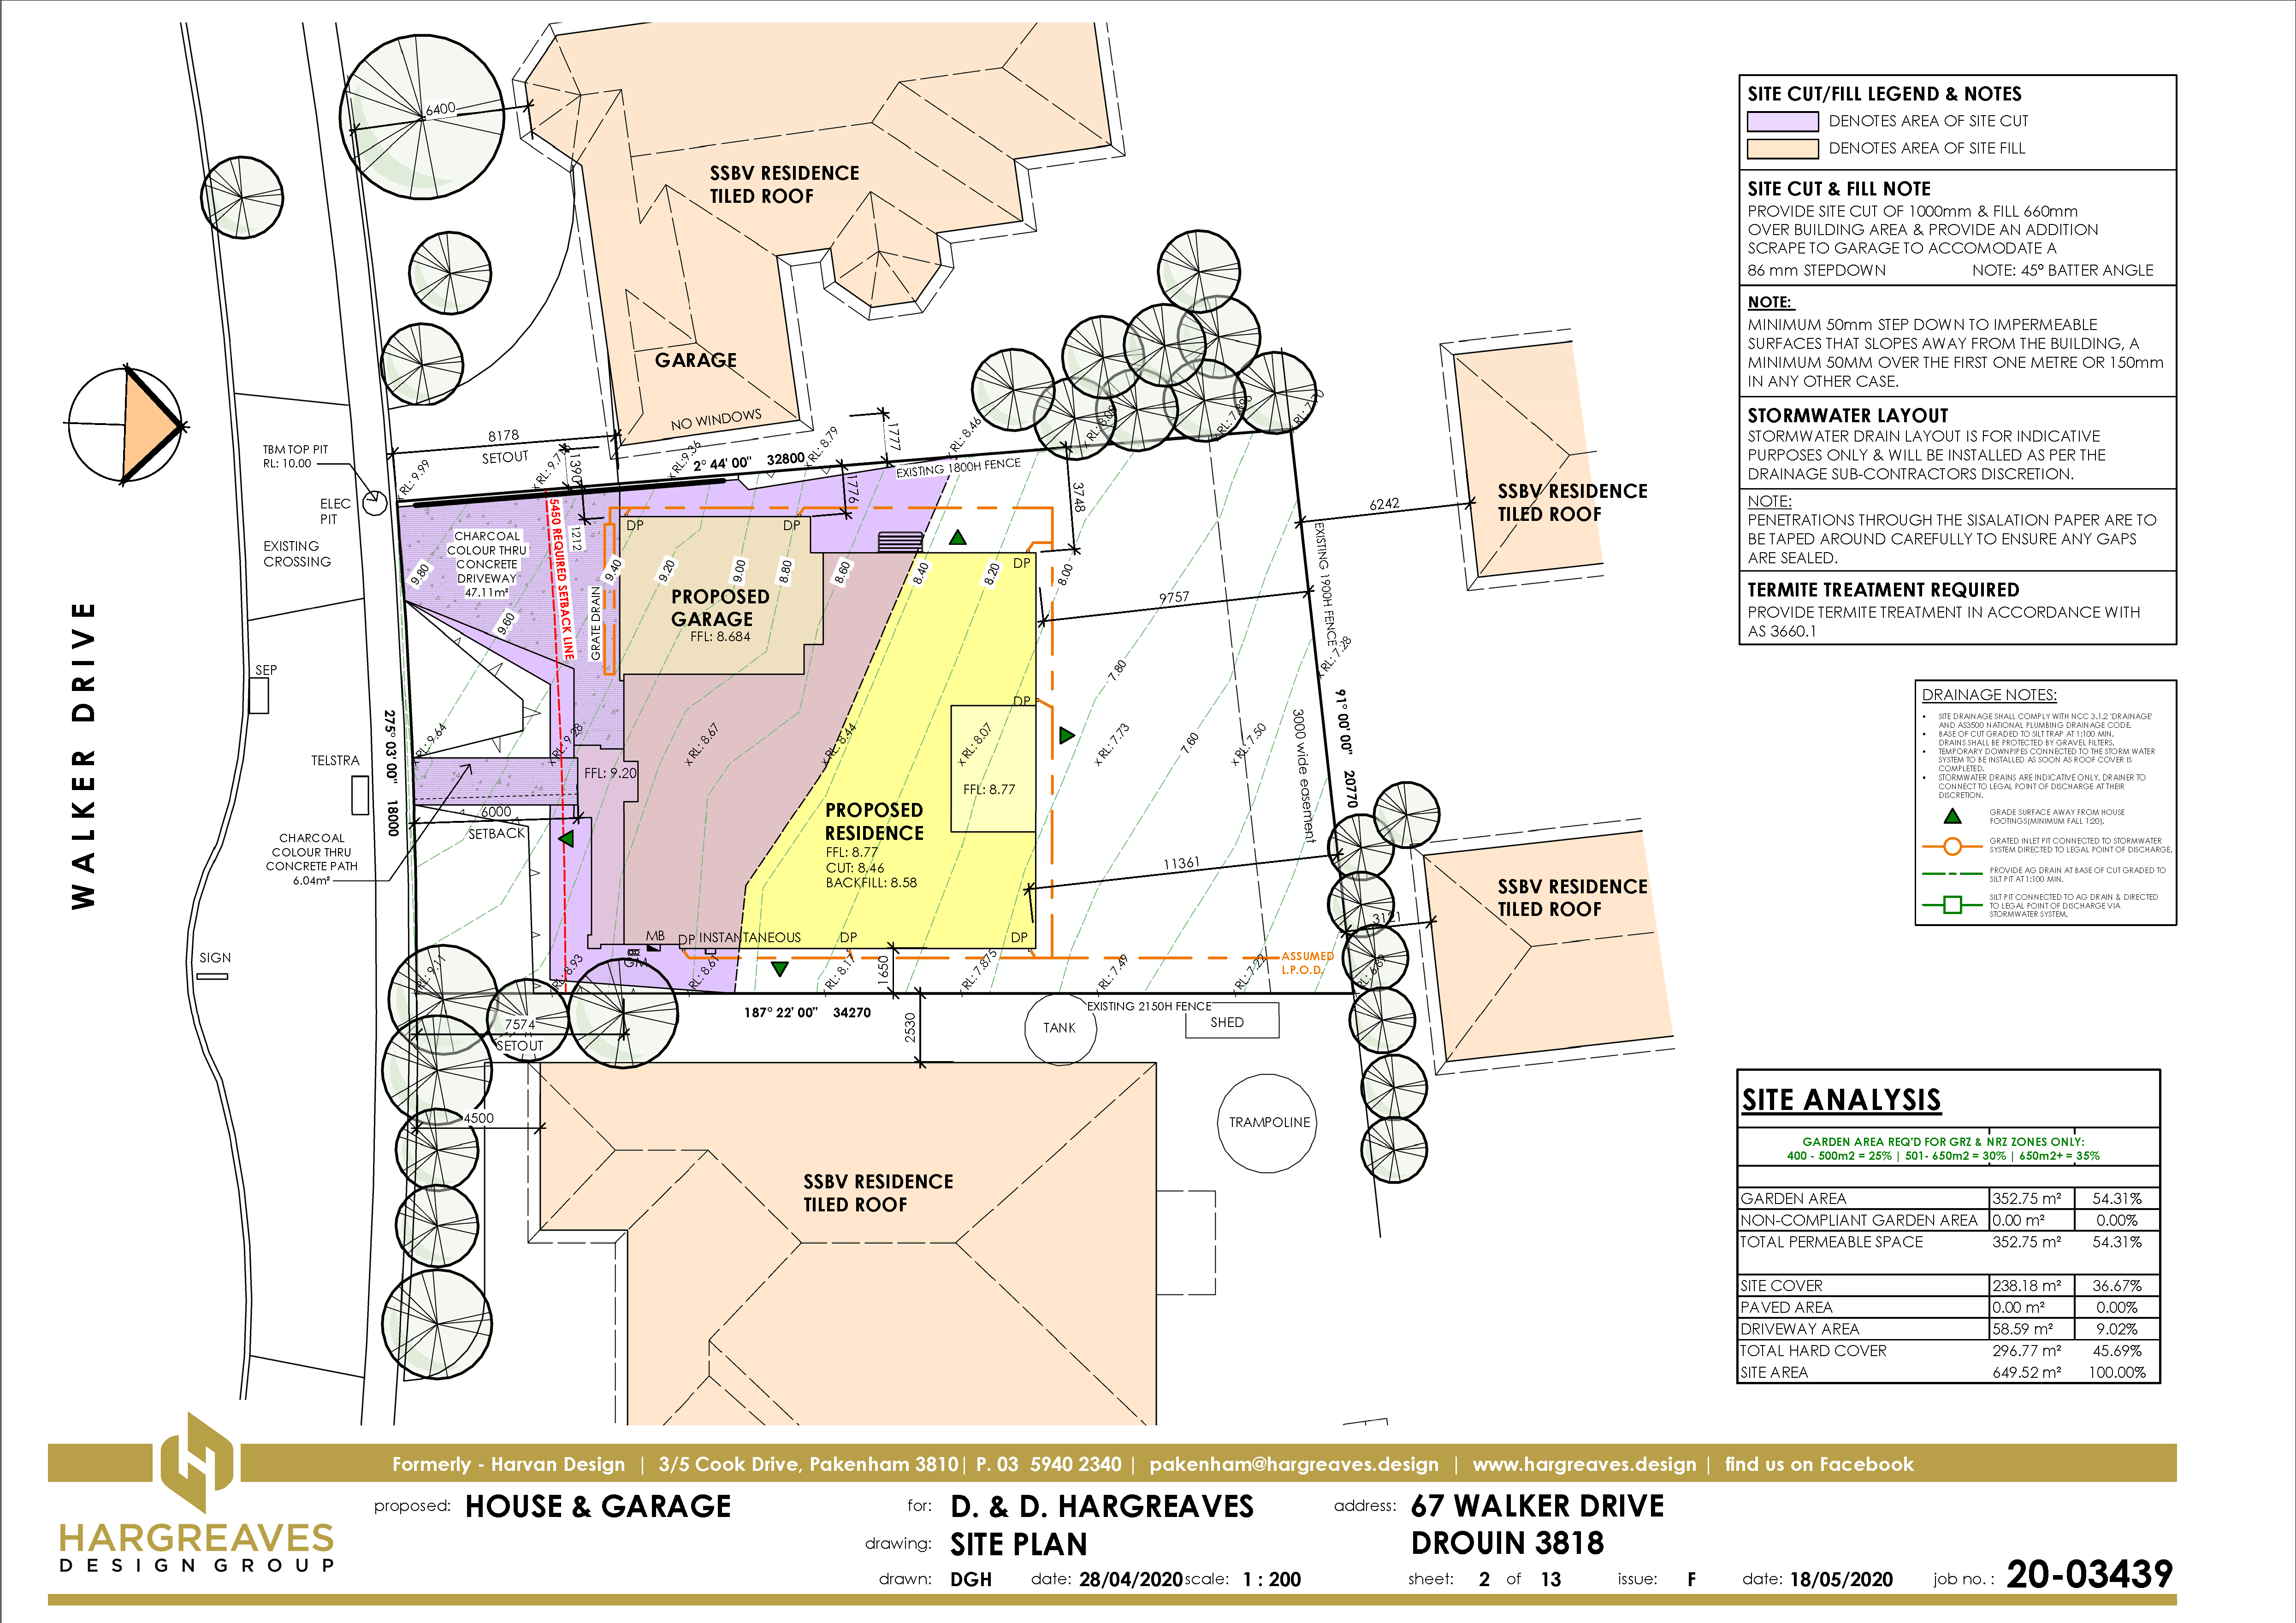 The Site Plan Sheet